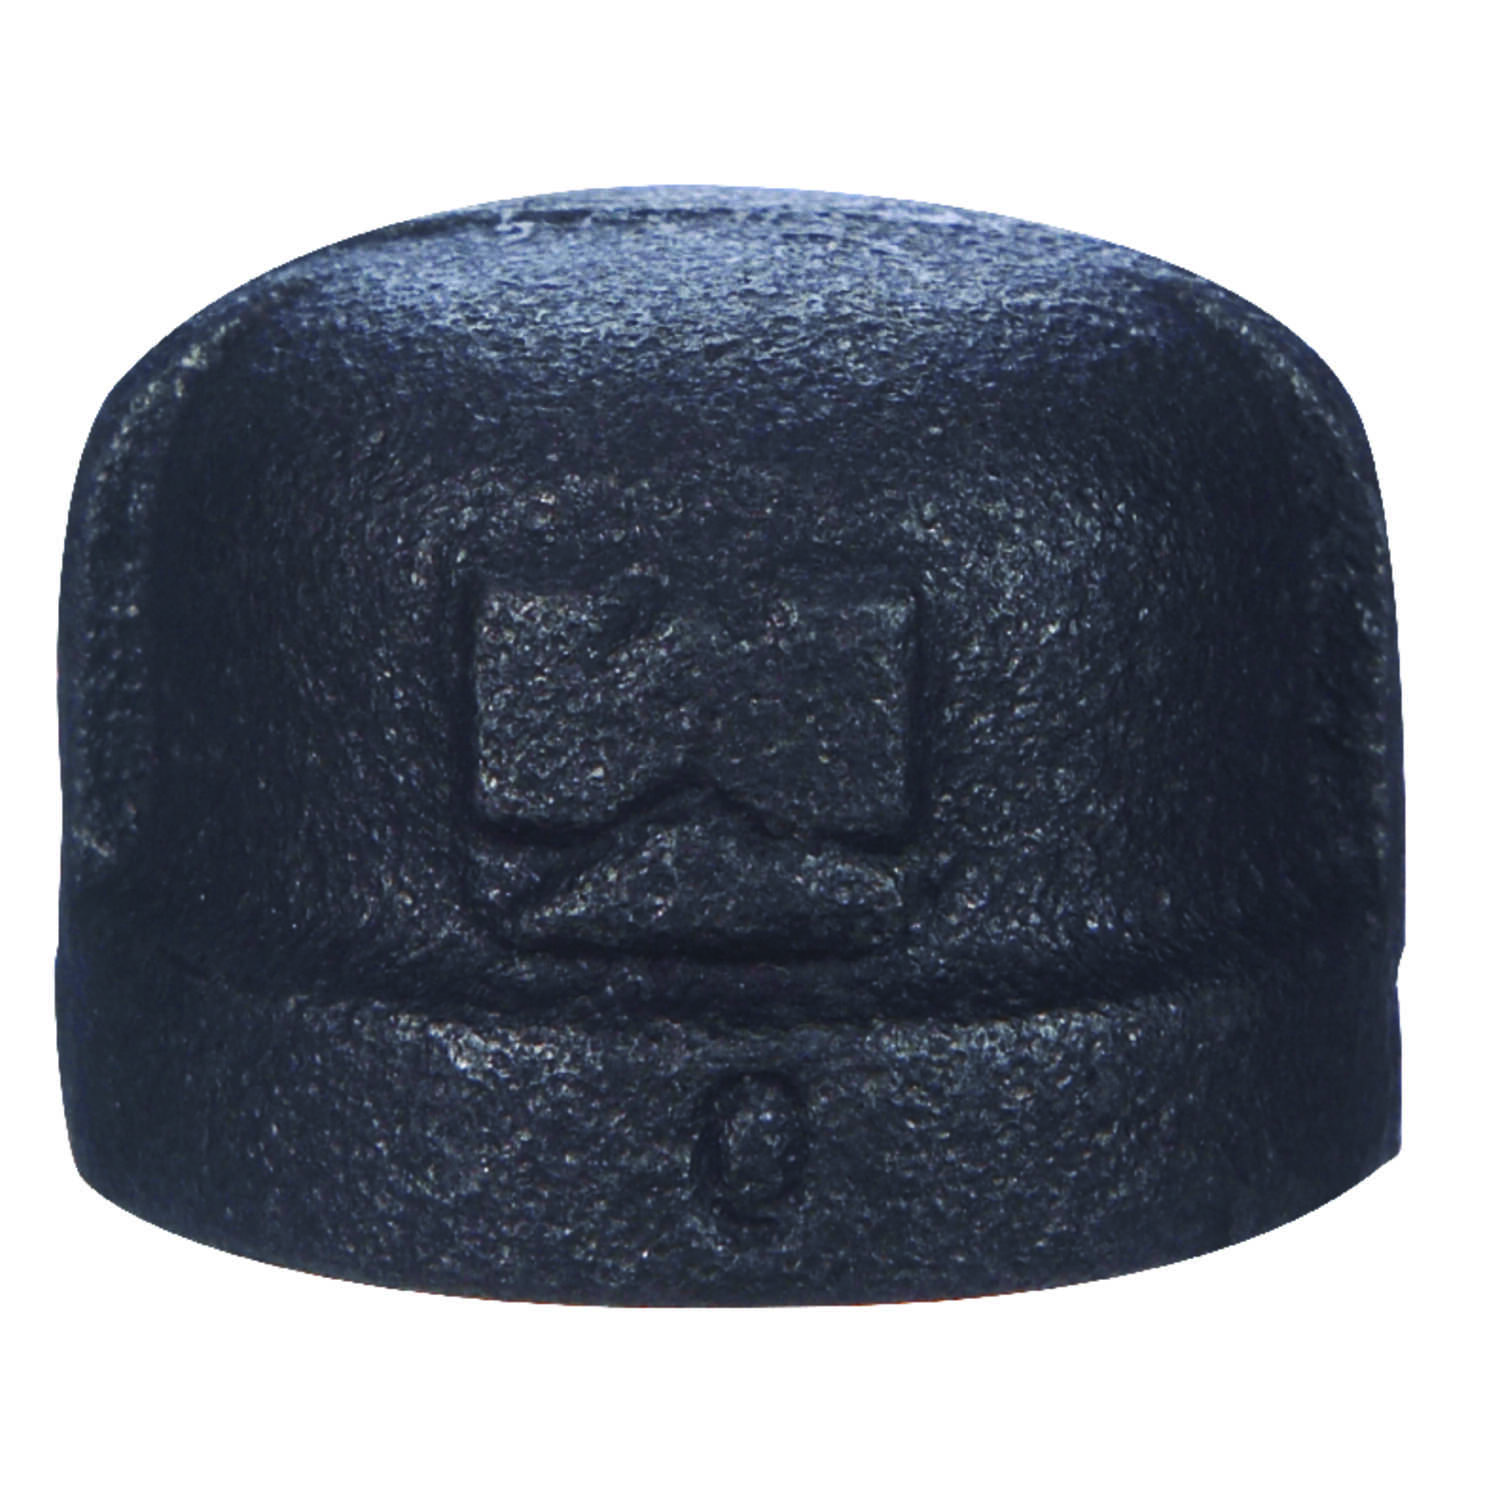 B & K  2 in. MPT   Black  Malleable Iron  Cap